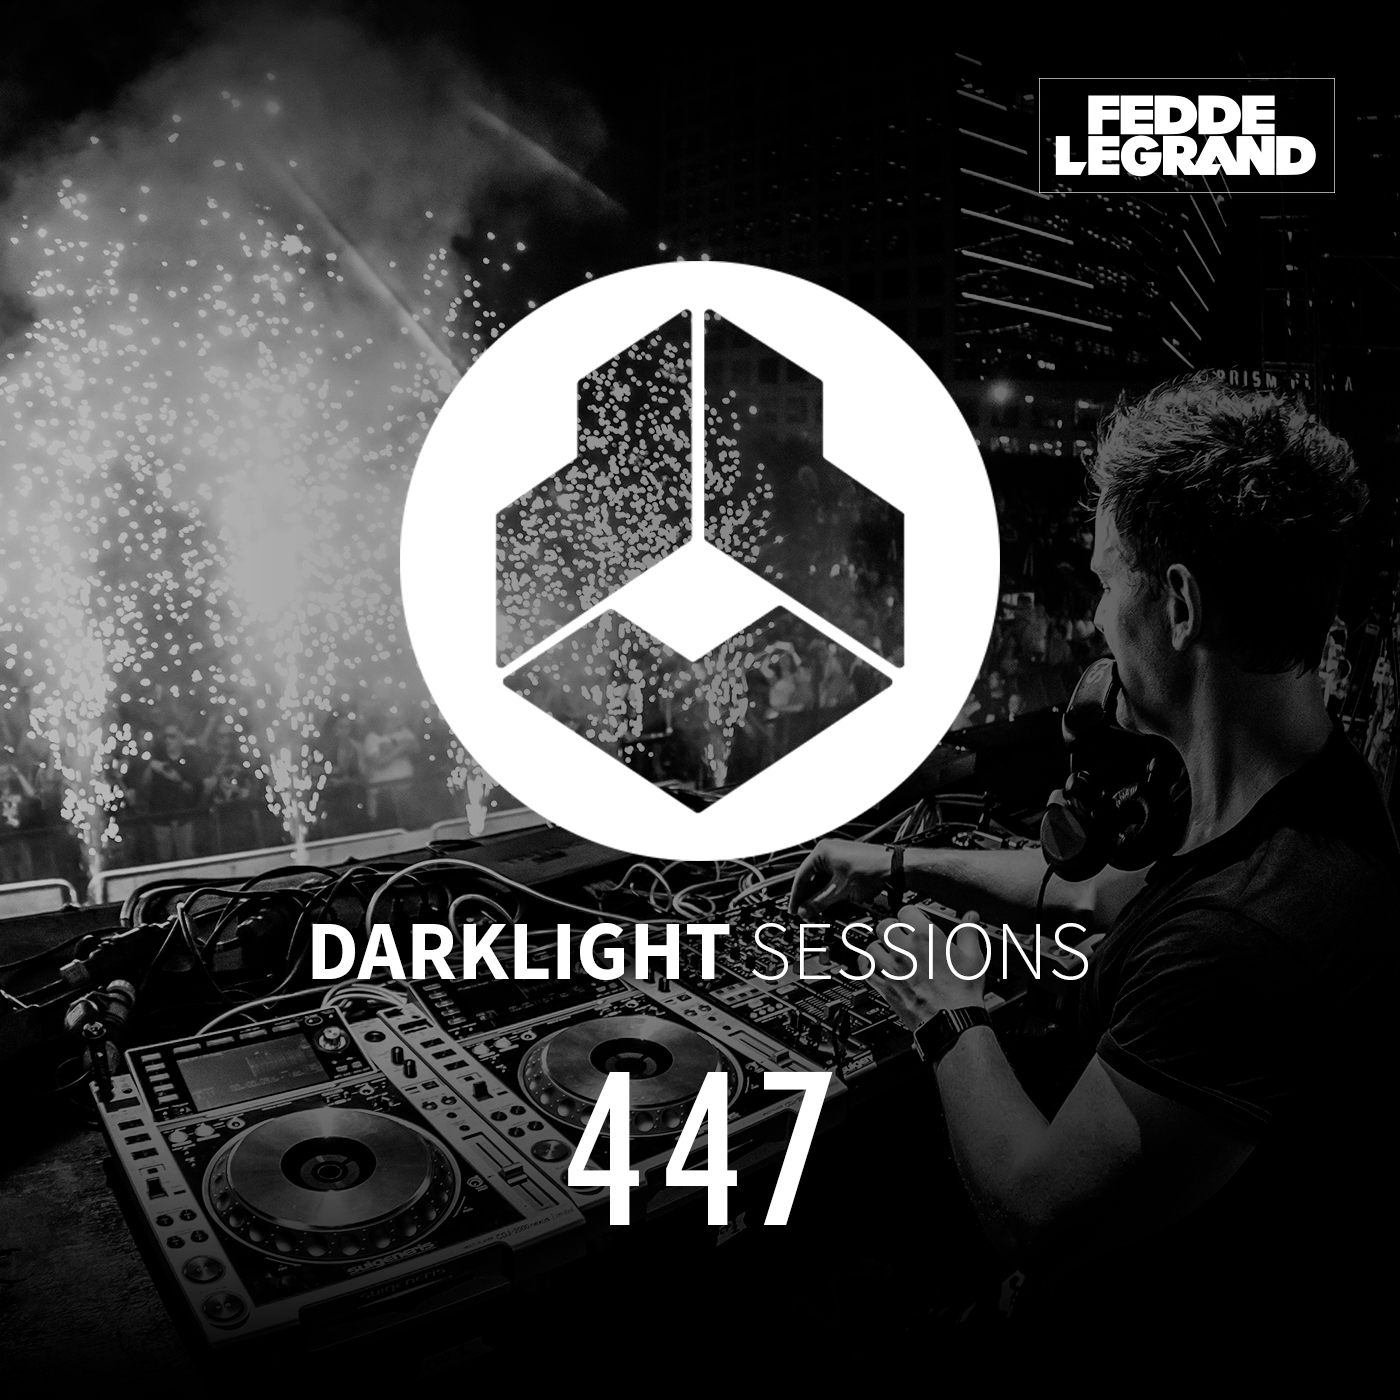 Darklight Sessions 447